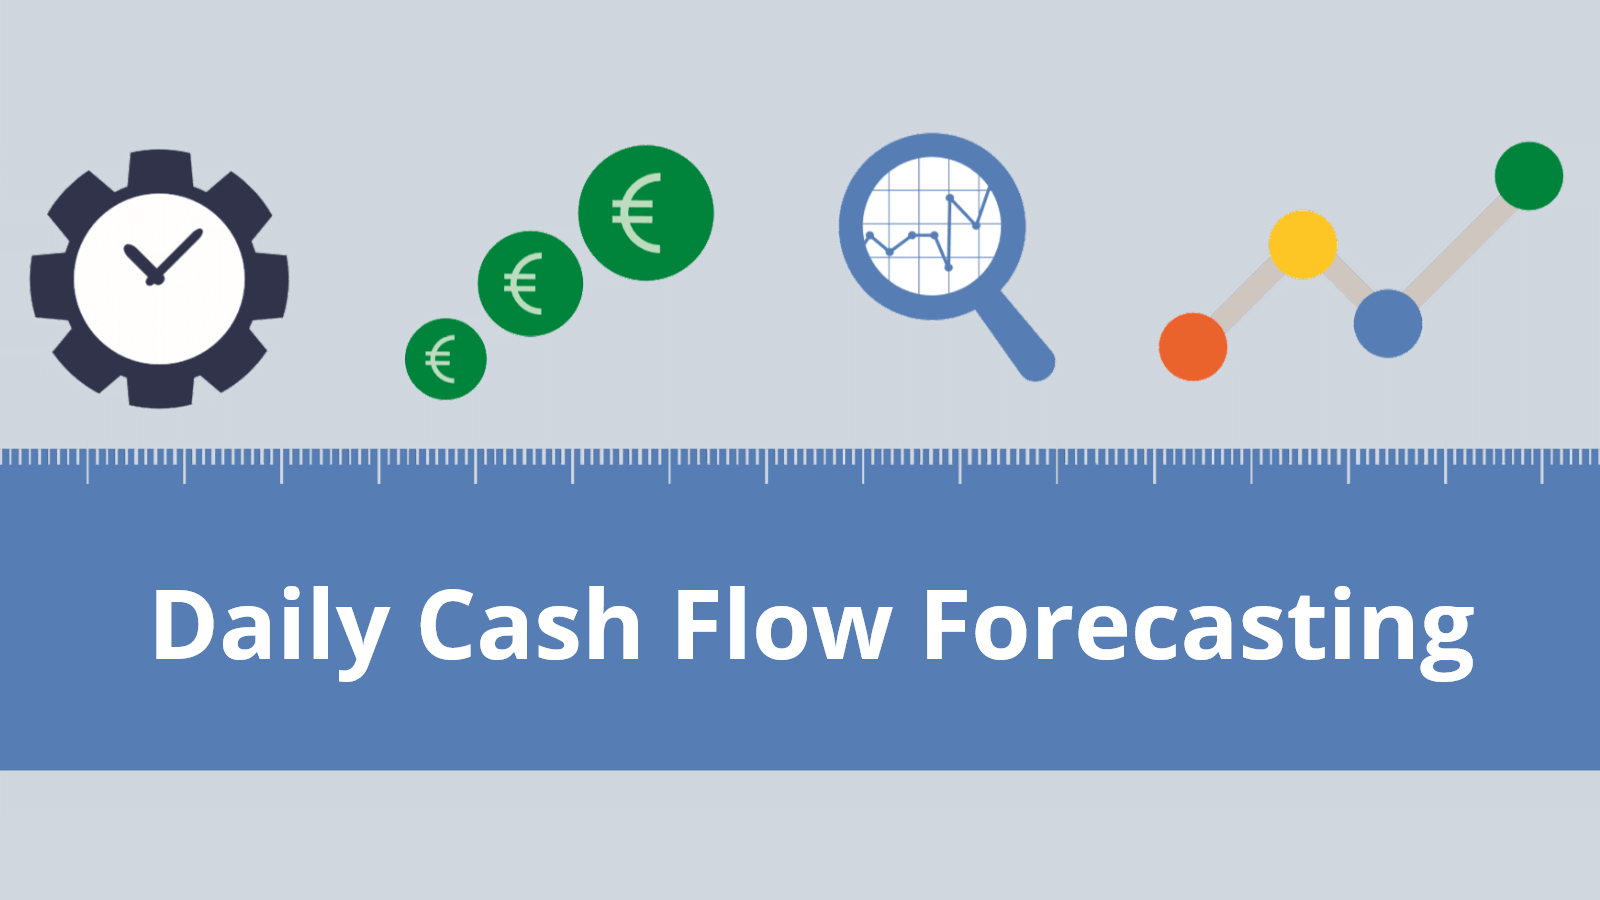 Daily cash flow model